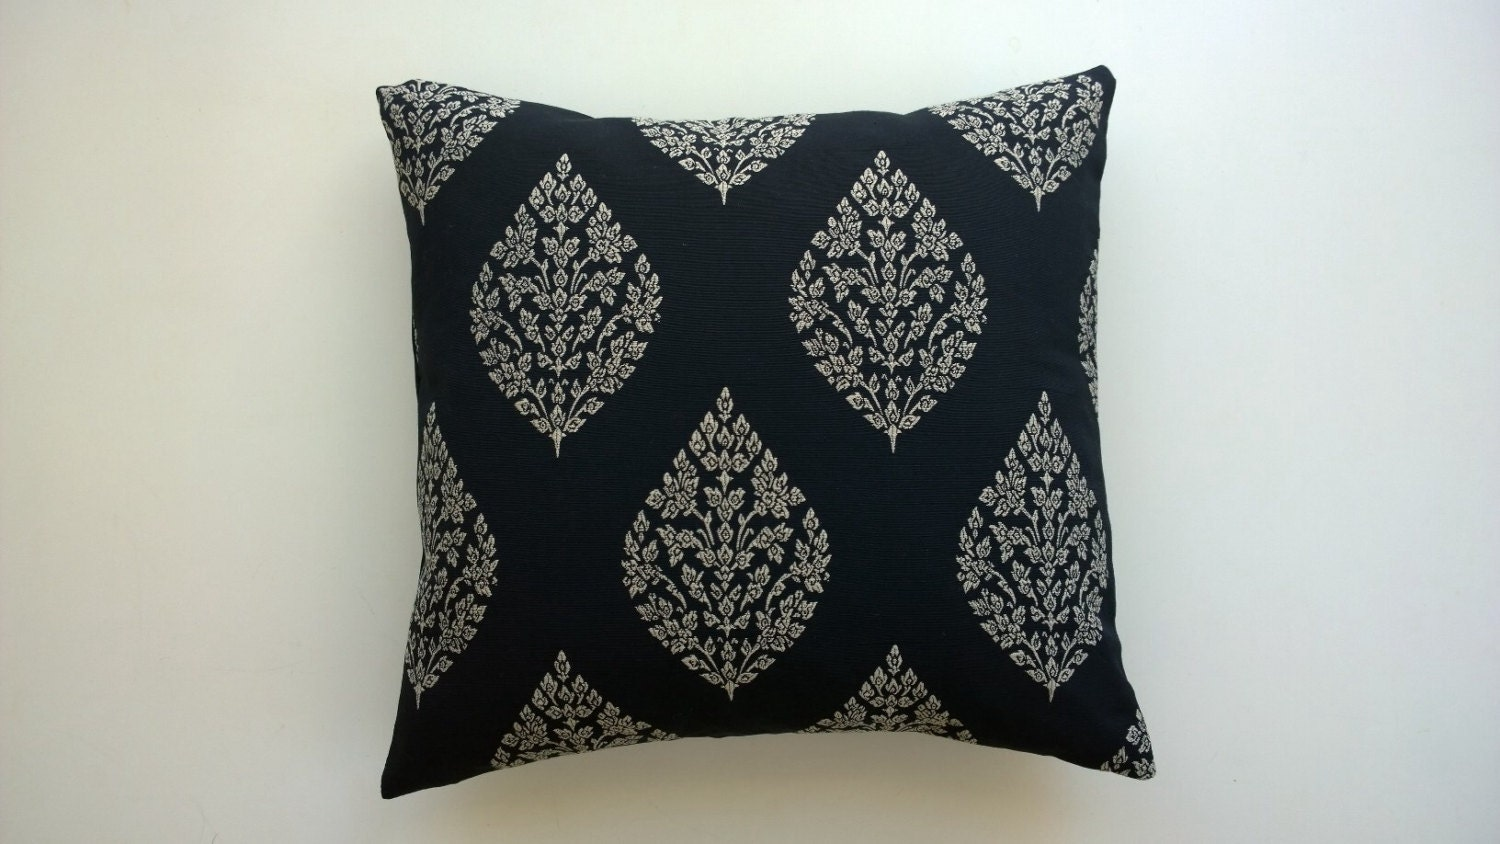 Black pillow cover sale decorative pillow 16x16 18x18